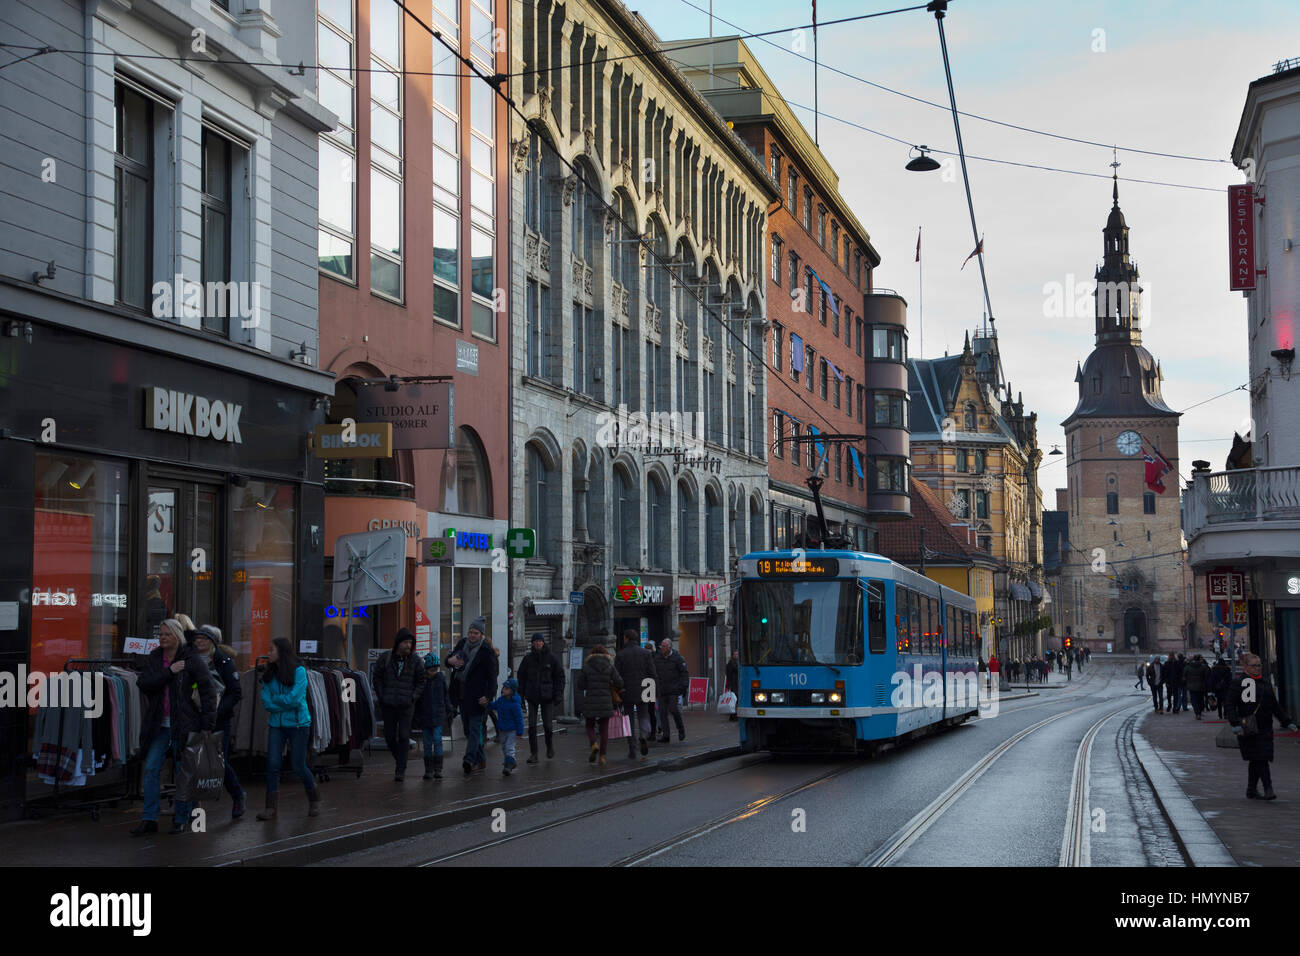 Oslo Cathedral at the end of Grensen Street, central Oslo, Norway, Scandinavia - Stock Image